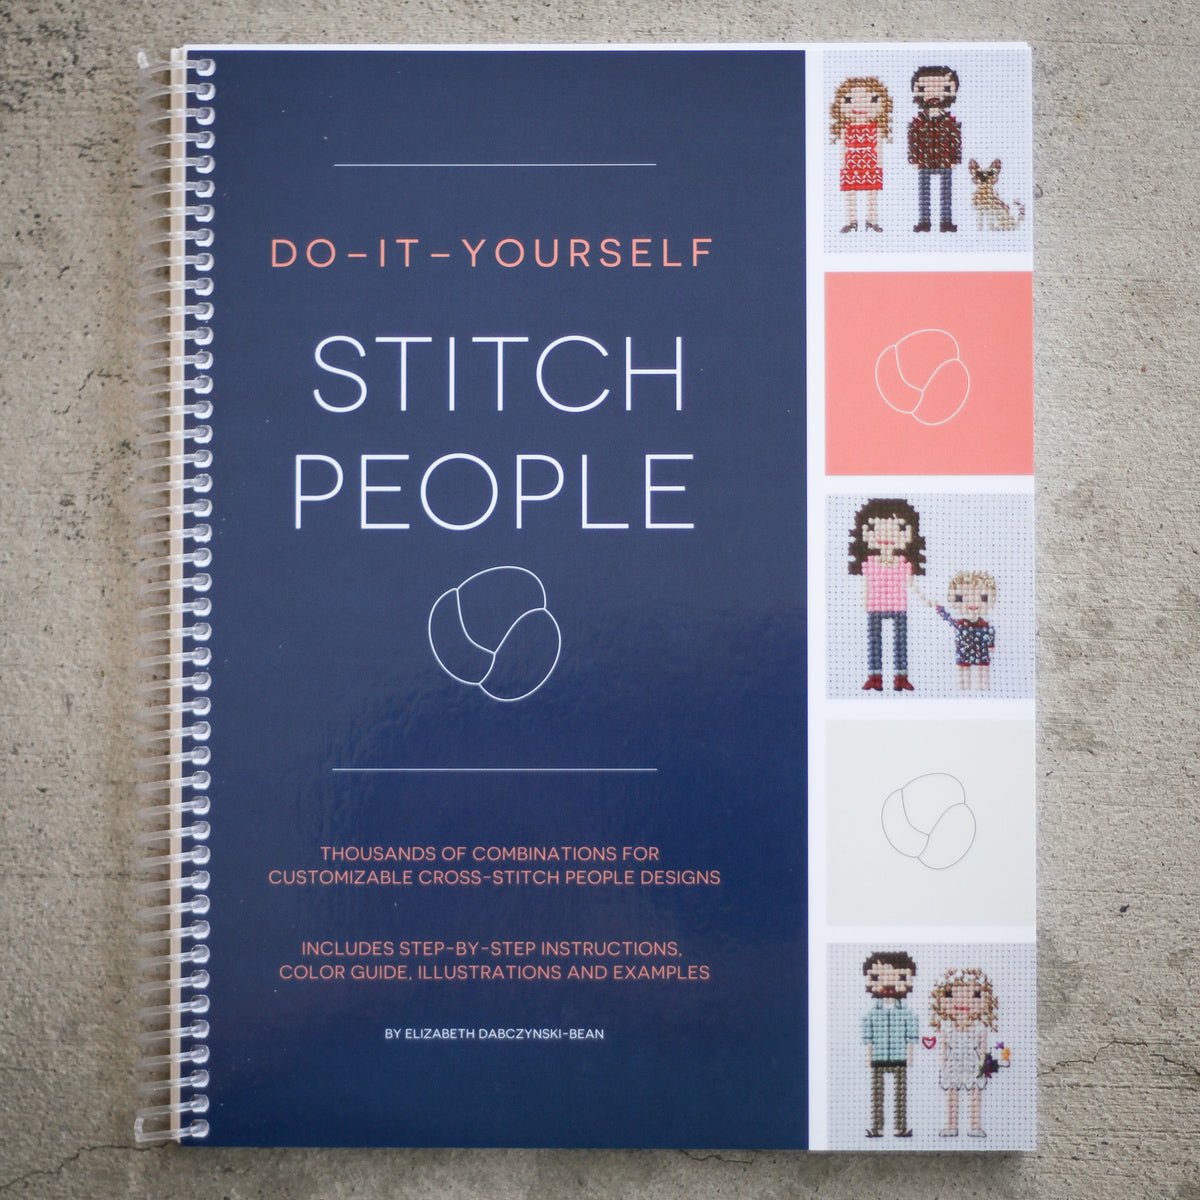 Do-It-Yourself Stitch People Book